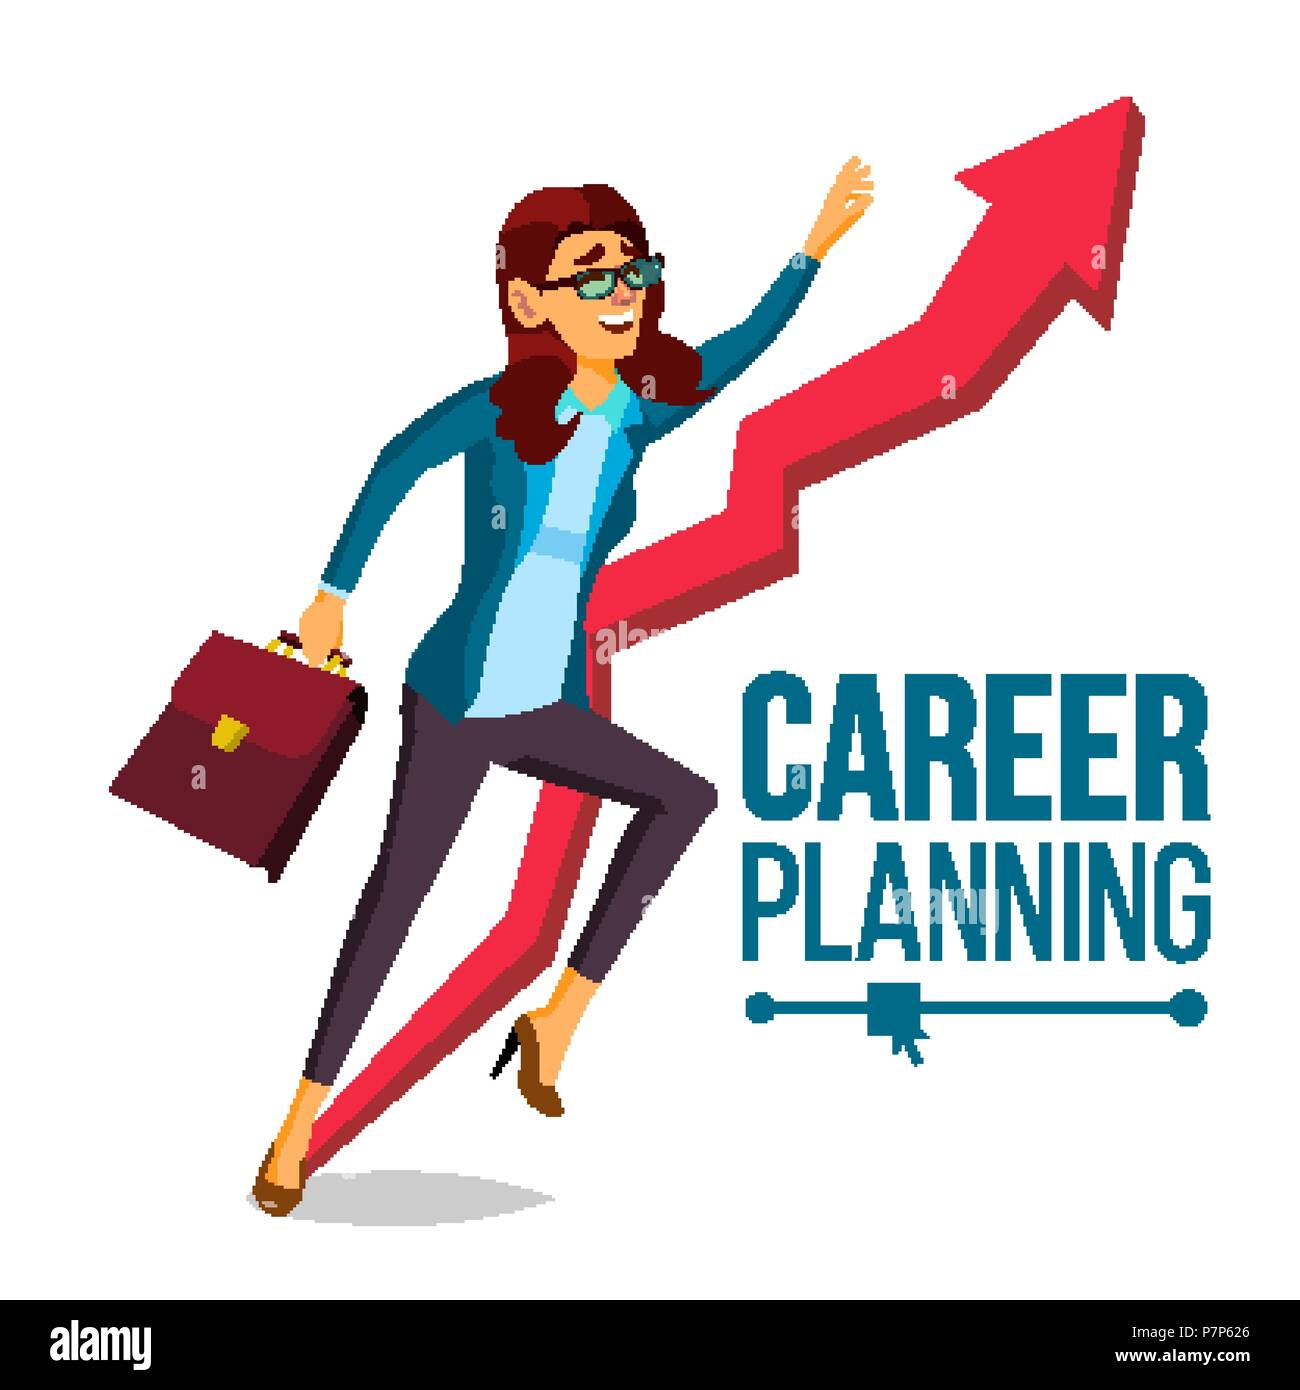 Business Woman Career Planning Vector Fast Career Growth Achieve Goal Huge Red Arrow More Profit Isolated Cartoon Illustration Stock Vector Image Art Alamy